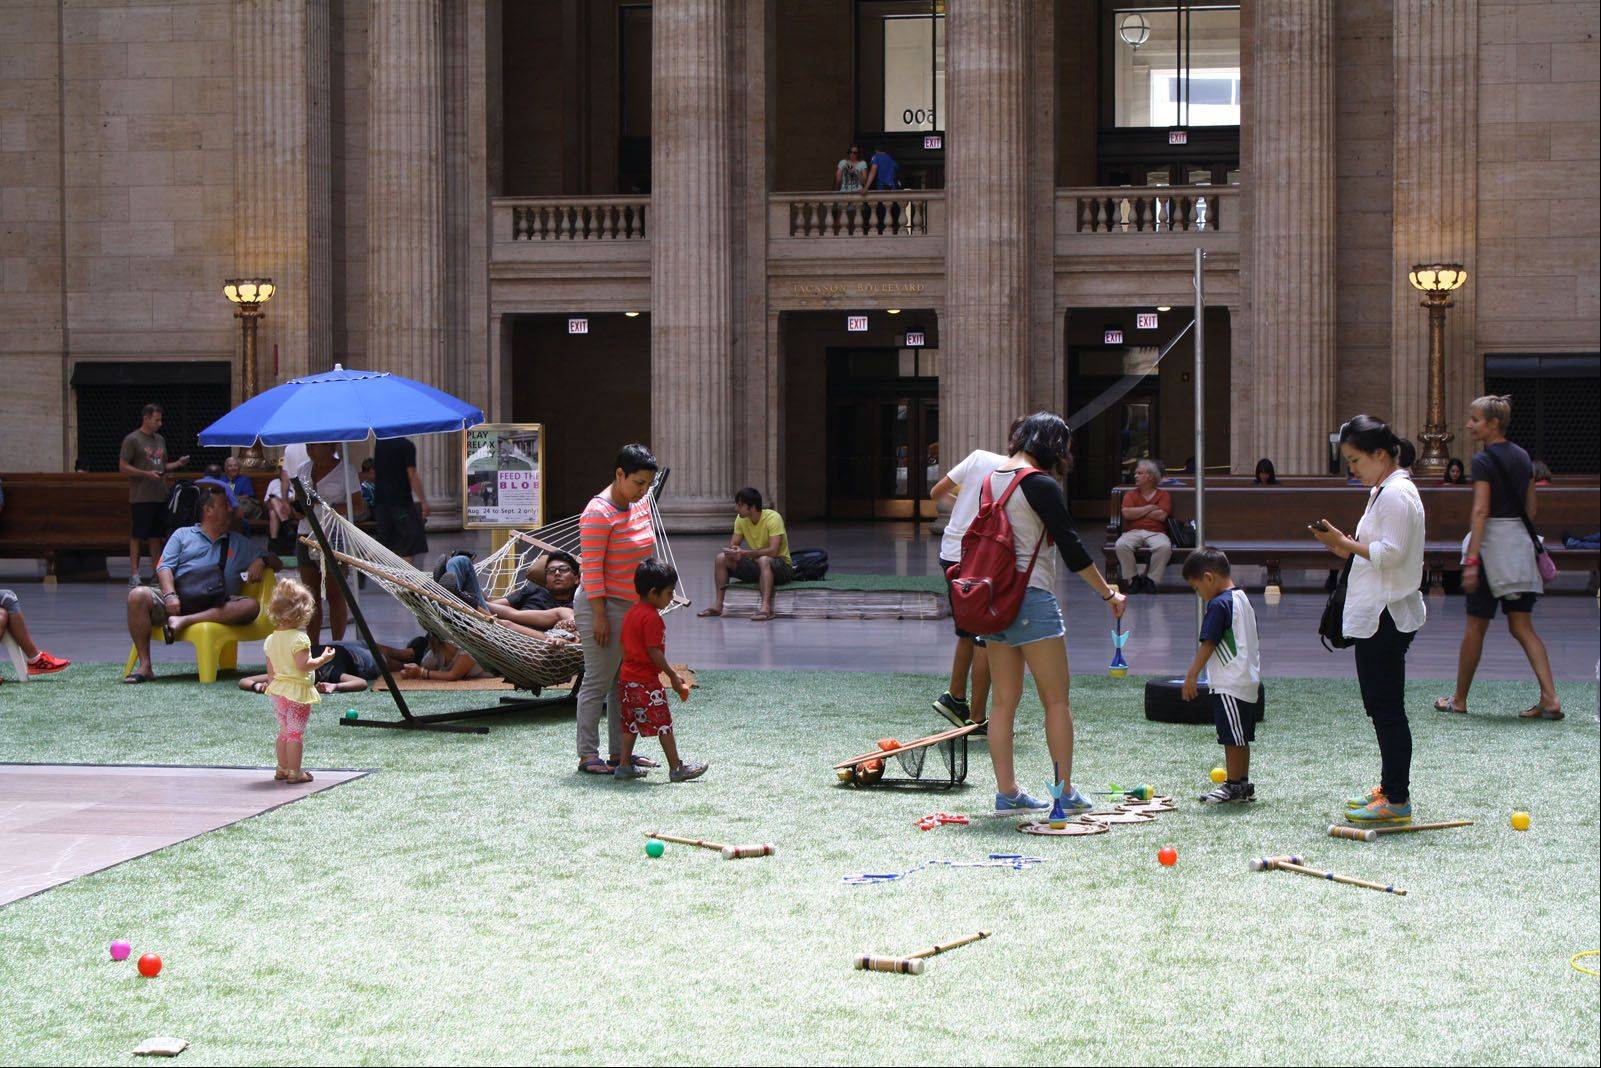 People use the play area in the Great Hall of Union Station that was a winning design of Buffalo Grove native Corey Nissenberg in a Chicago competition.